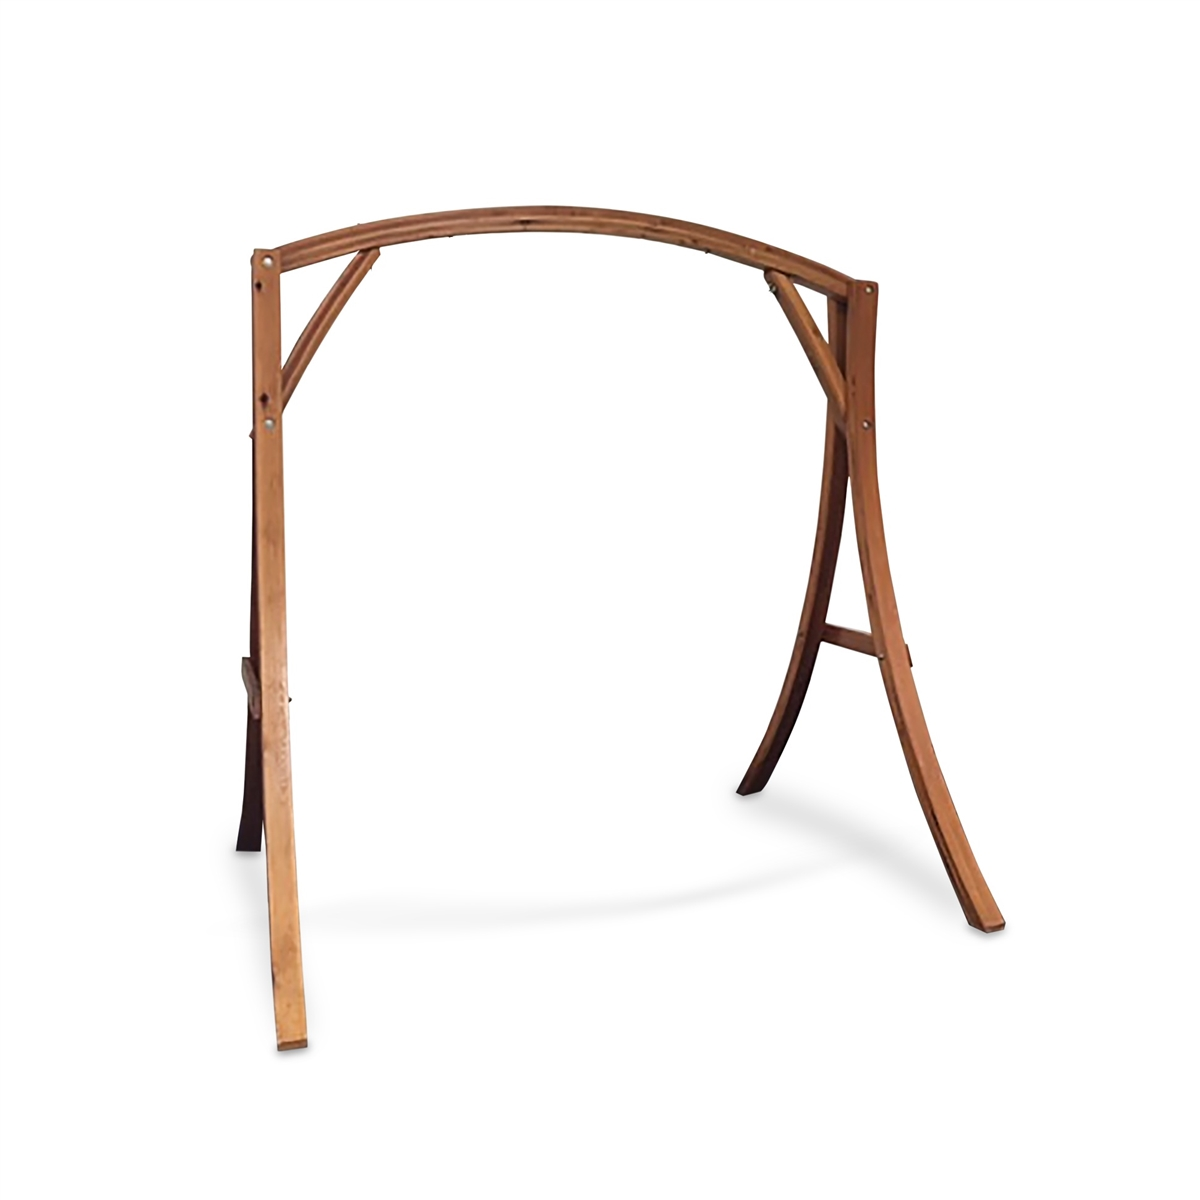 sc 1 st  South Mission & Wooden Arch Hammocks Cypress Swing Stand